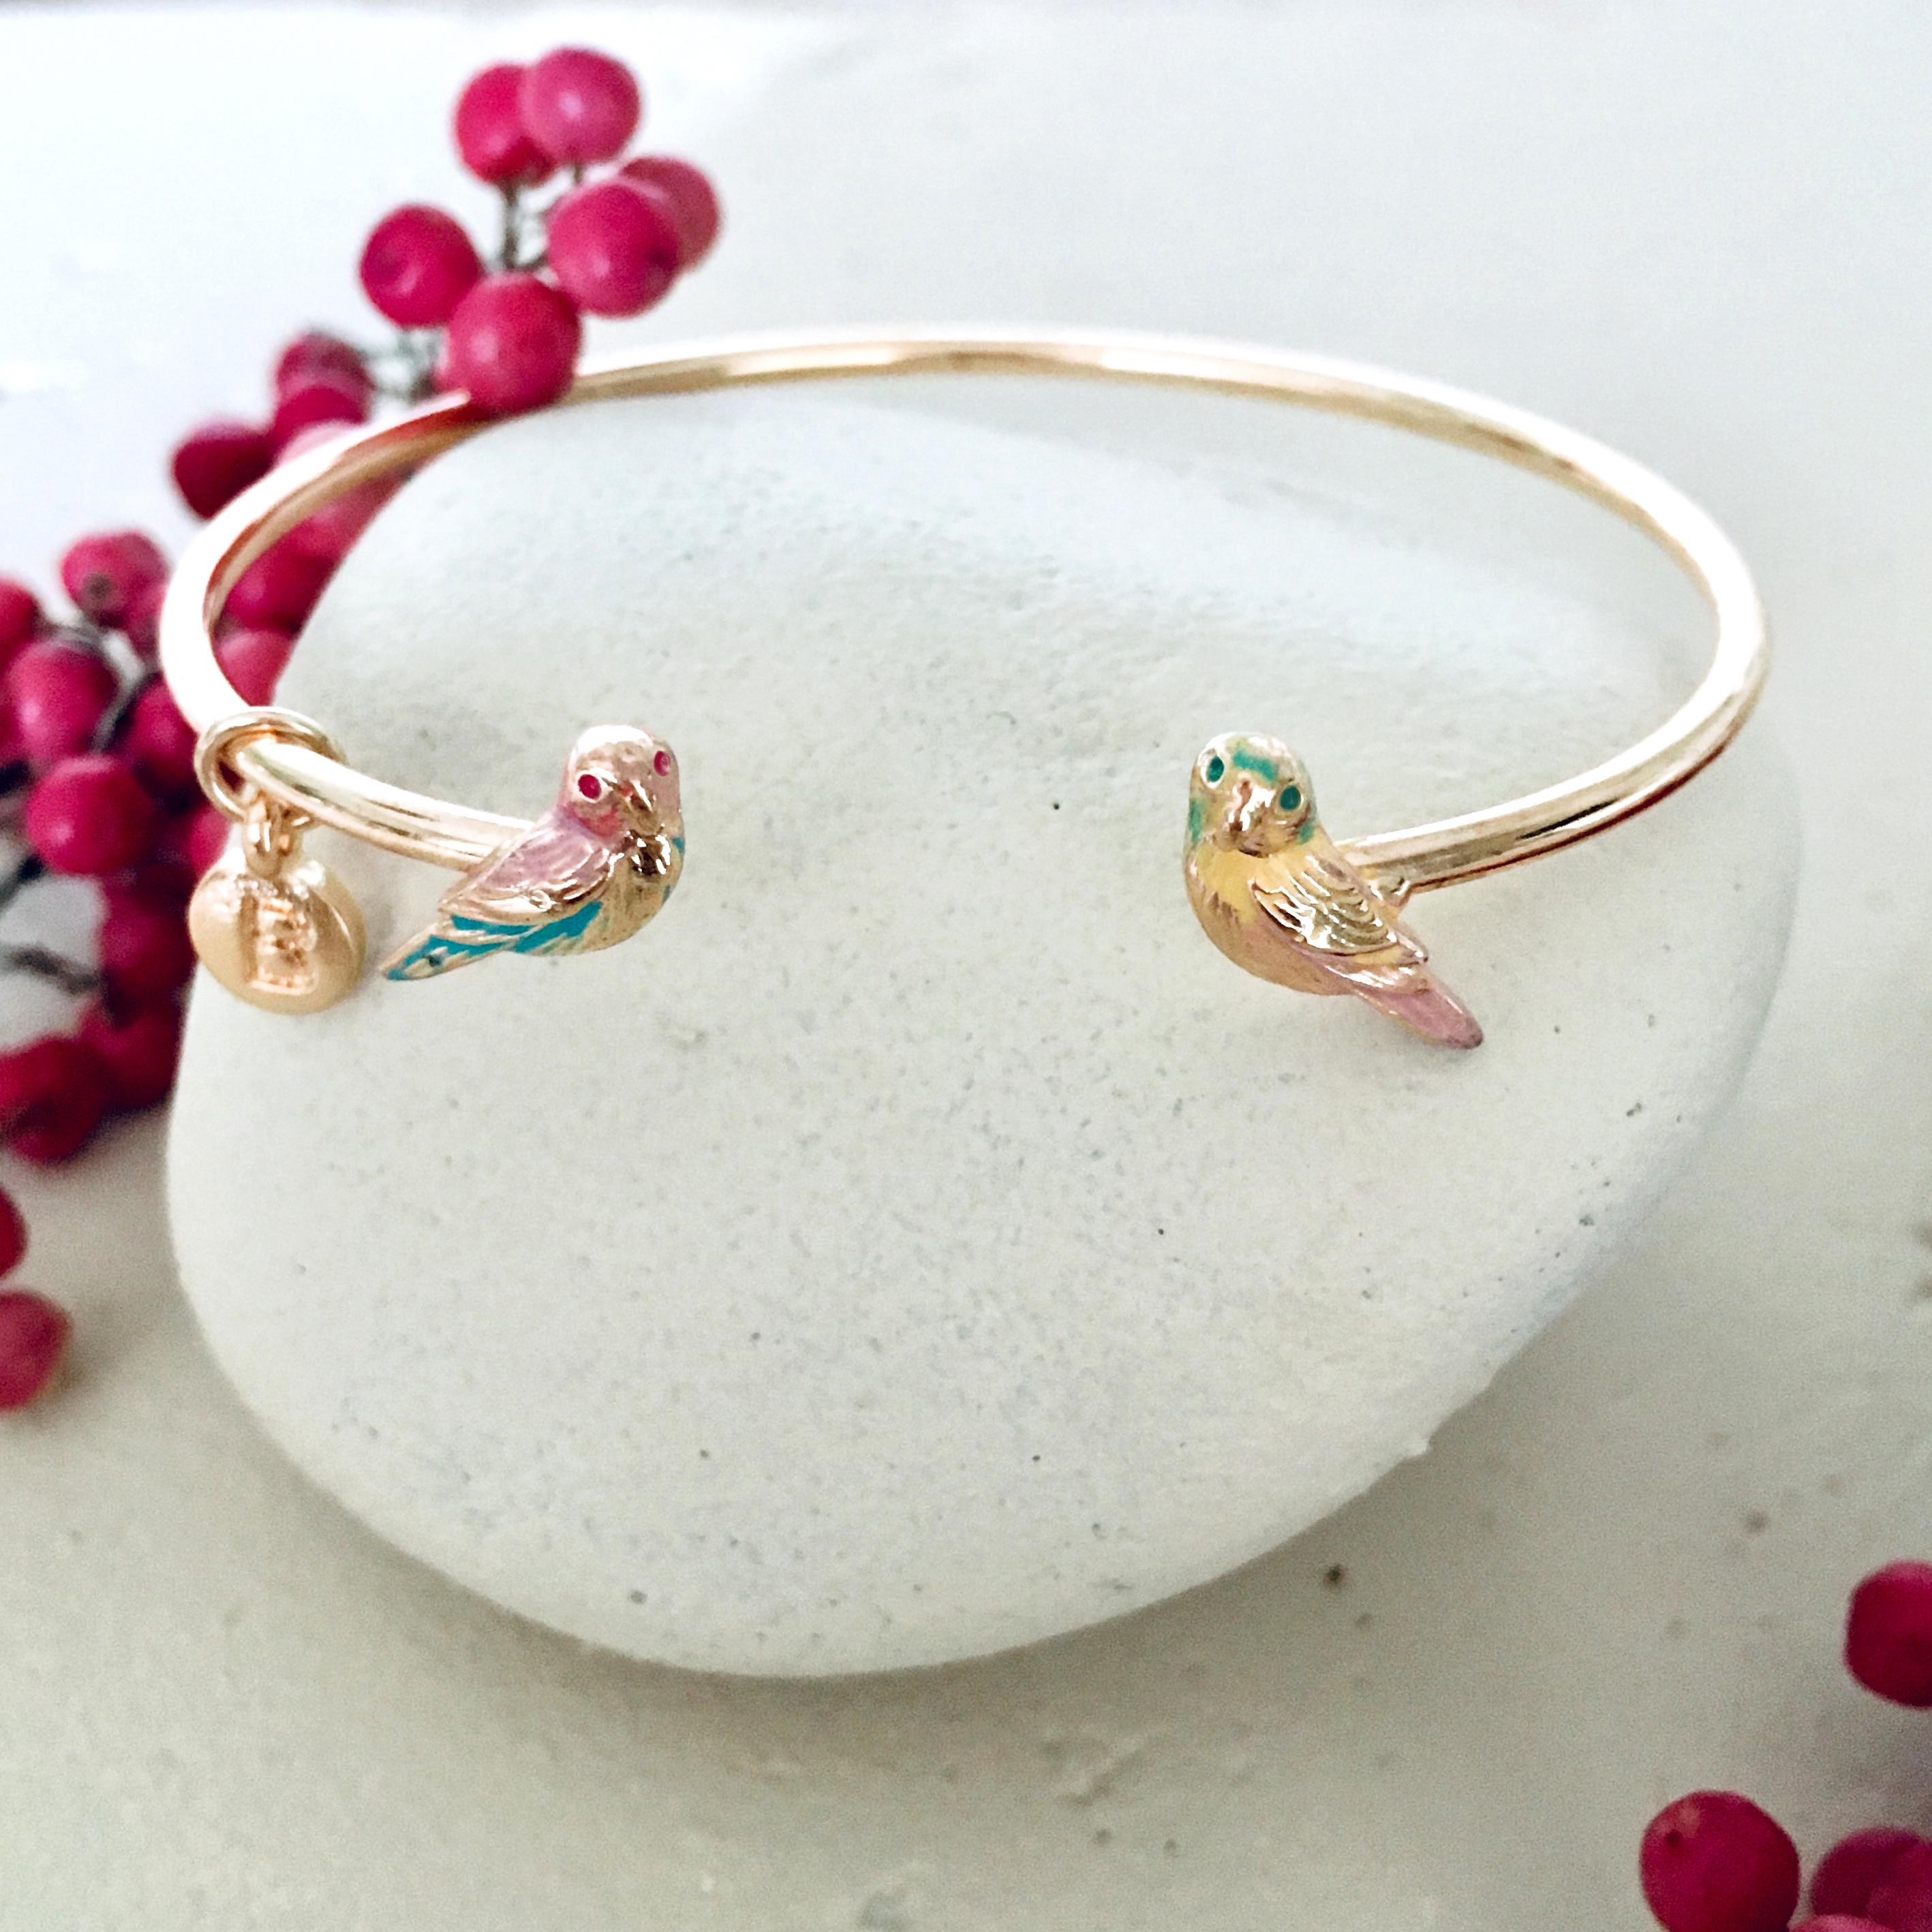 Menagerie - Enamelled Love Bird Bangle